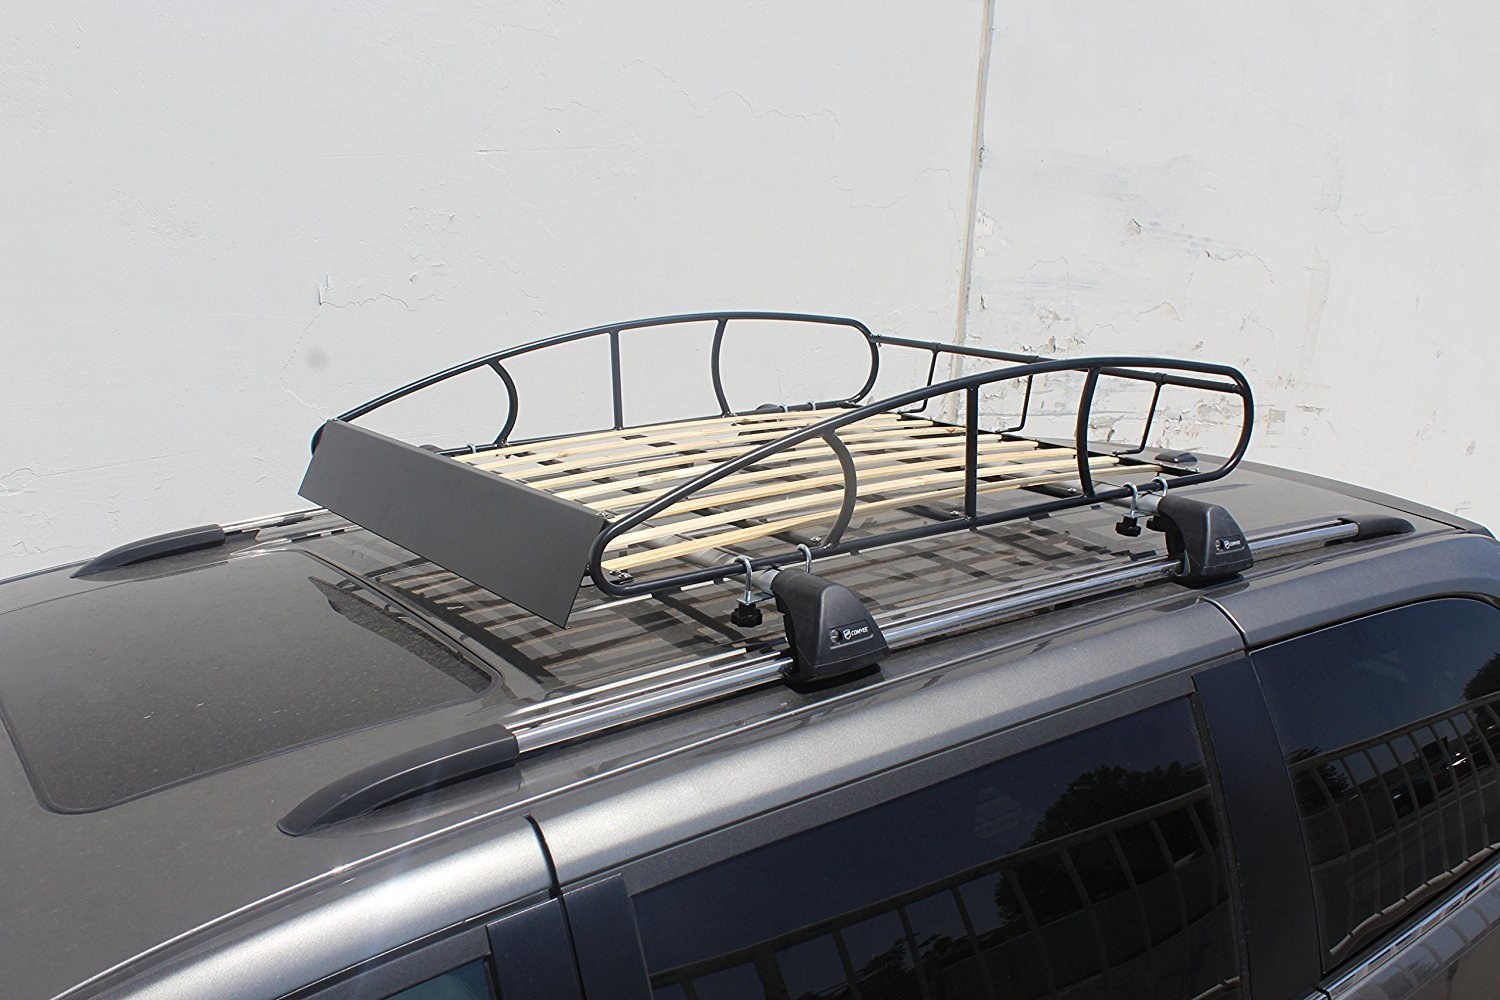 0a4d4cd7a33d Matte Black Paint Polishing - Universal Roof Rack Cargo Car Top ...